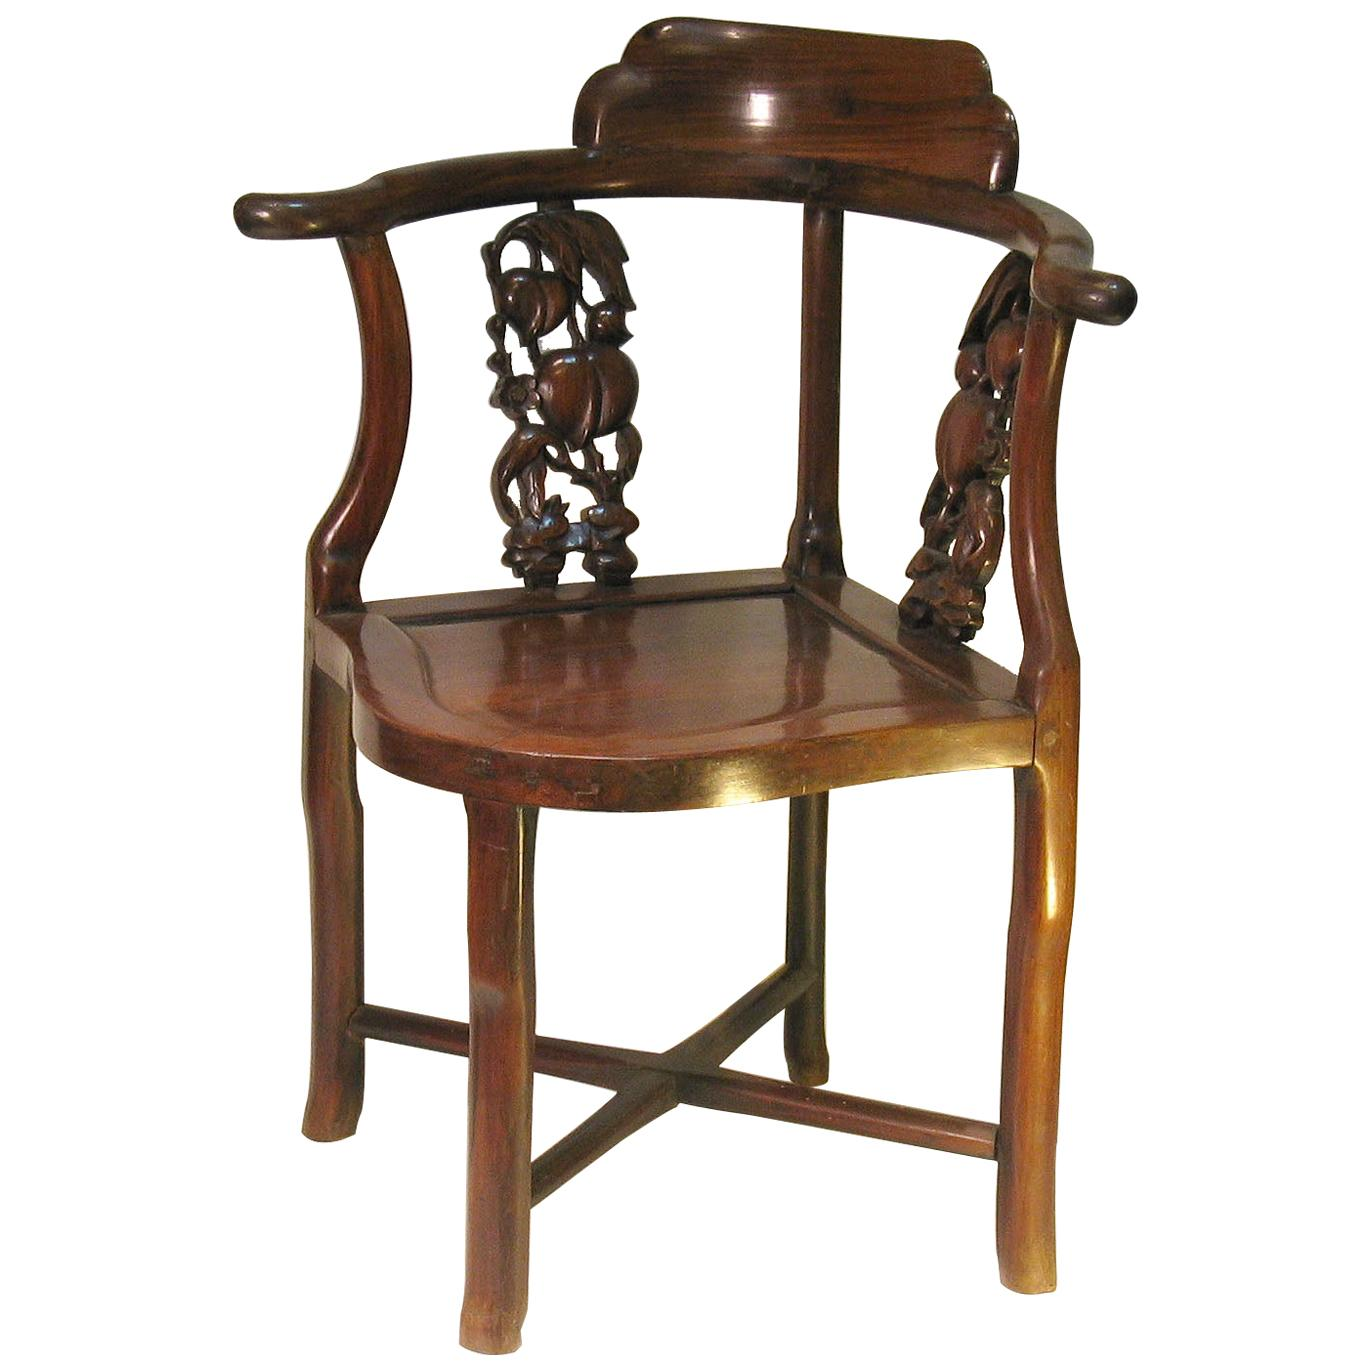 Chinese Hongmu Corner Chair, 19th Century